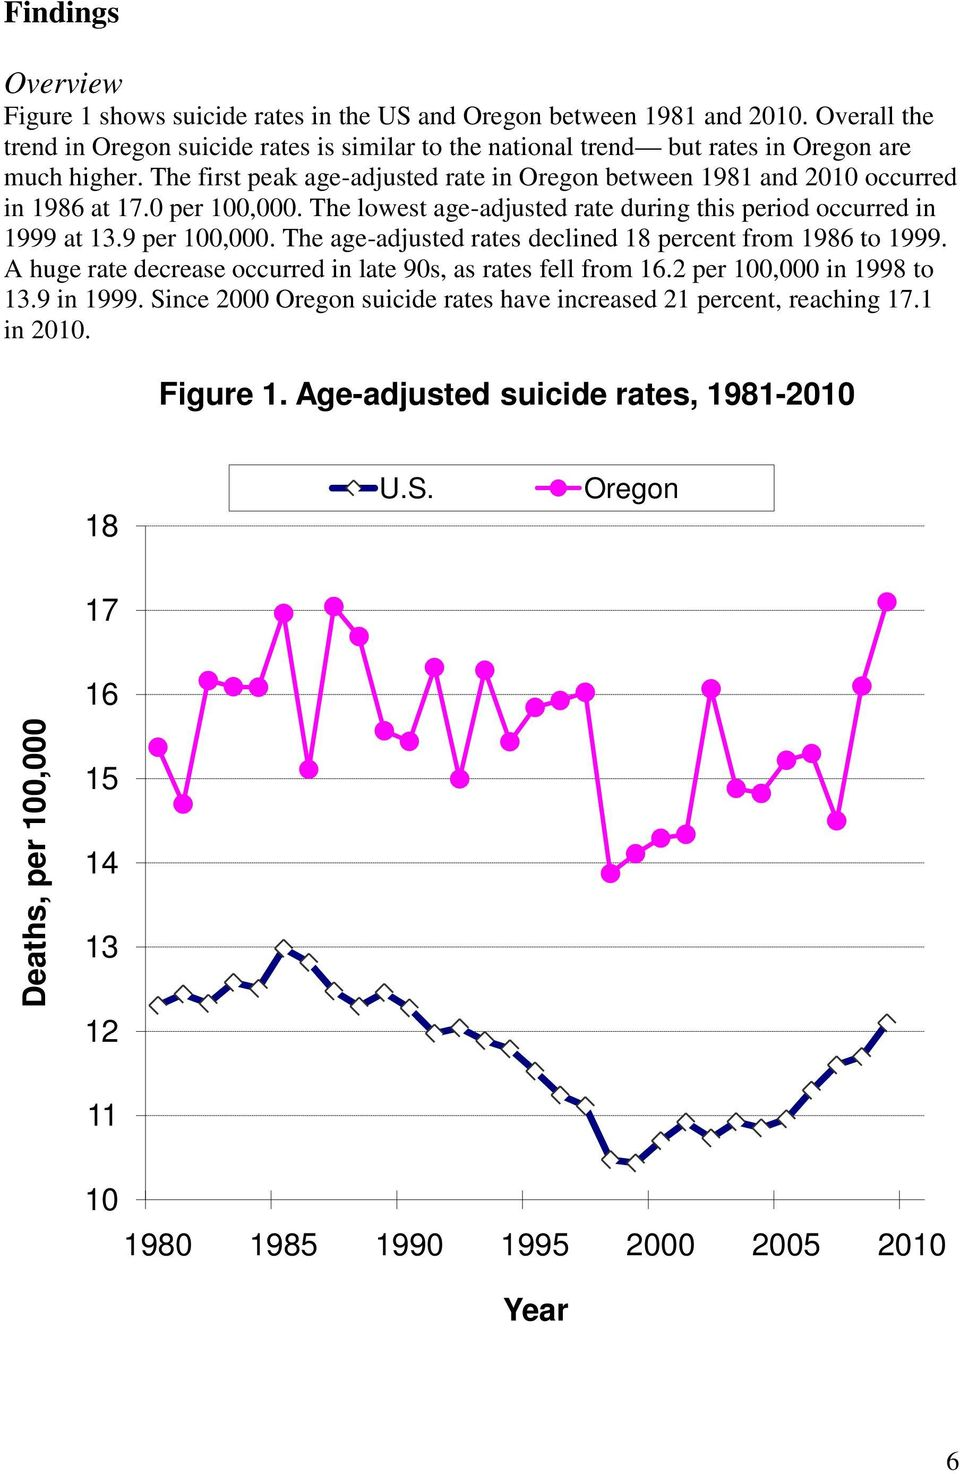 The first peak age-adjusted rate in Oregon between 1981 and 2010 occurred in 1986 at 17.0 per 100,000. The lowest age-adjusted rate during this period occurred in 1999 at 13.9 per 100,000.